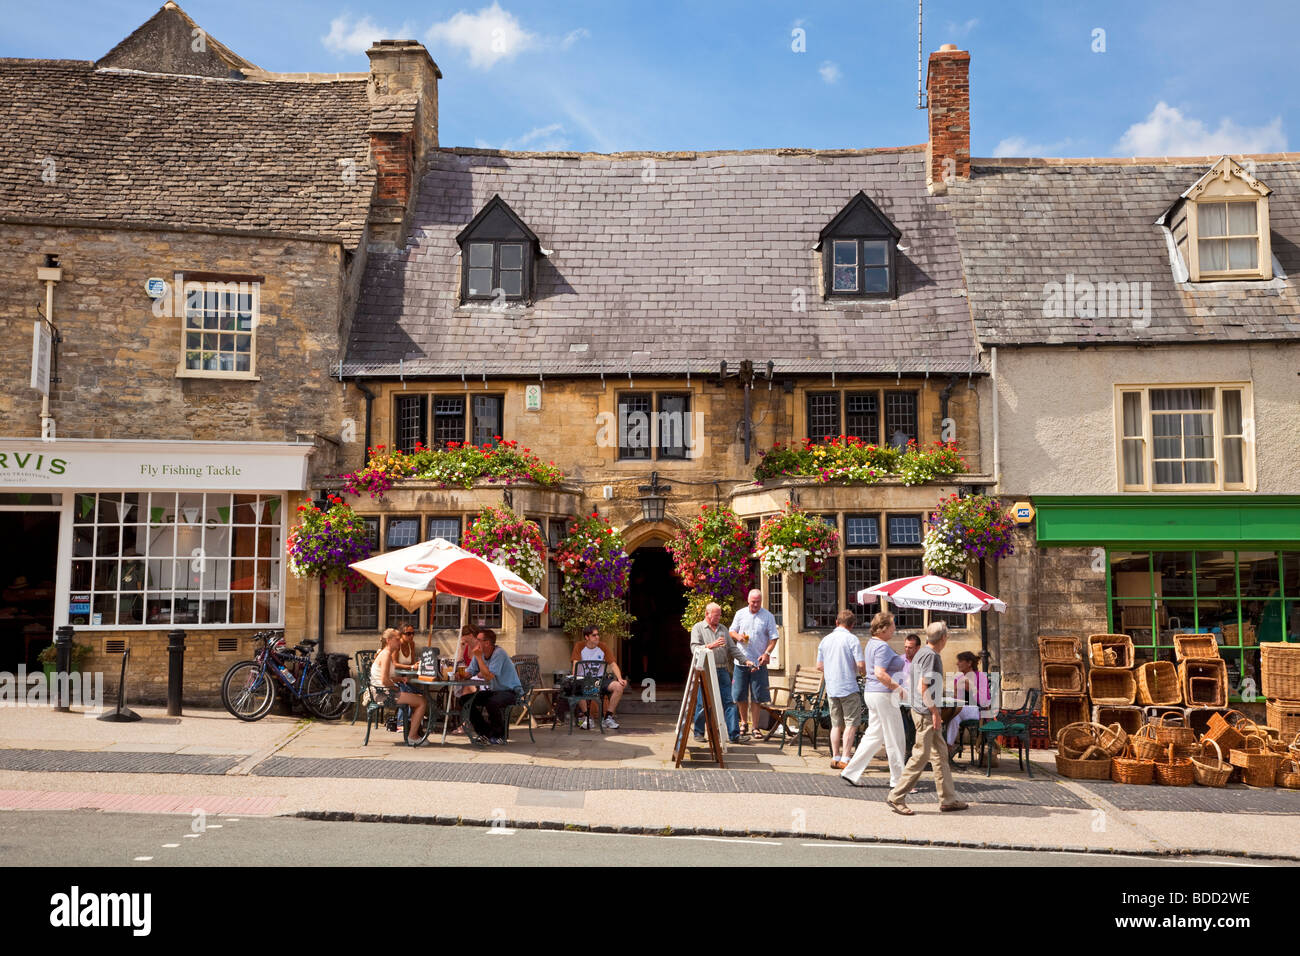 The Mermaid pub - small medieval english pub in the Cotswolds town of Burford, Oxfordshire, England, UK in summer - Stock Image